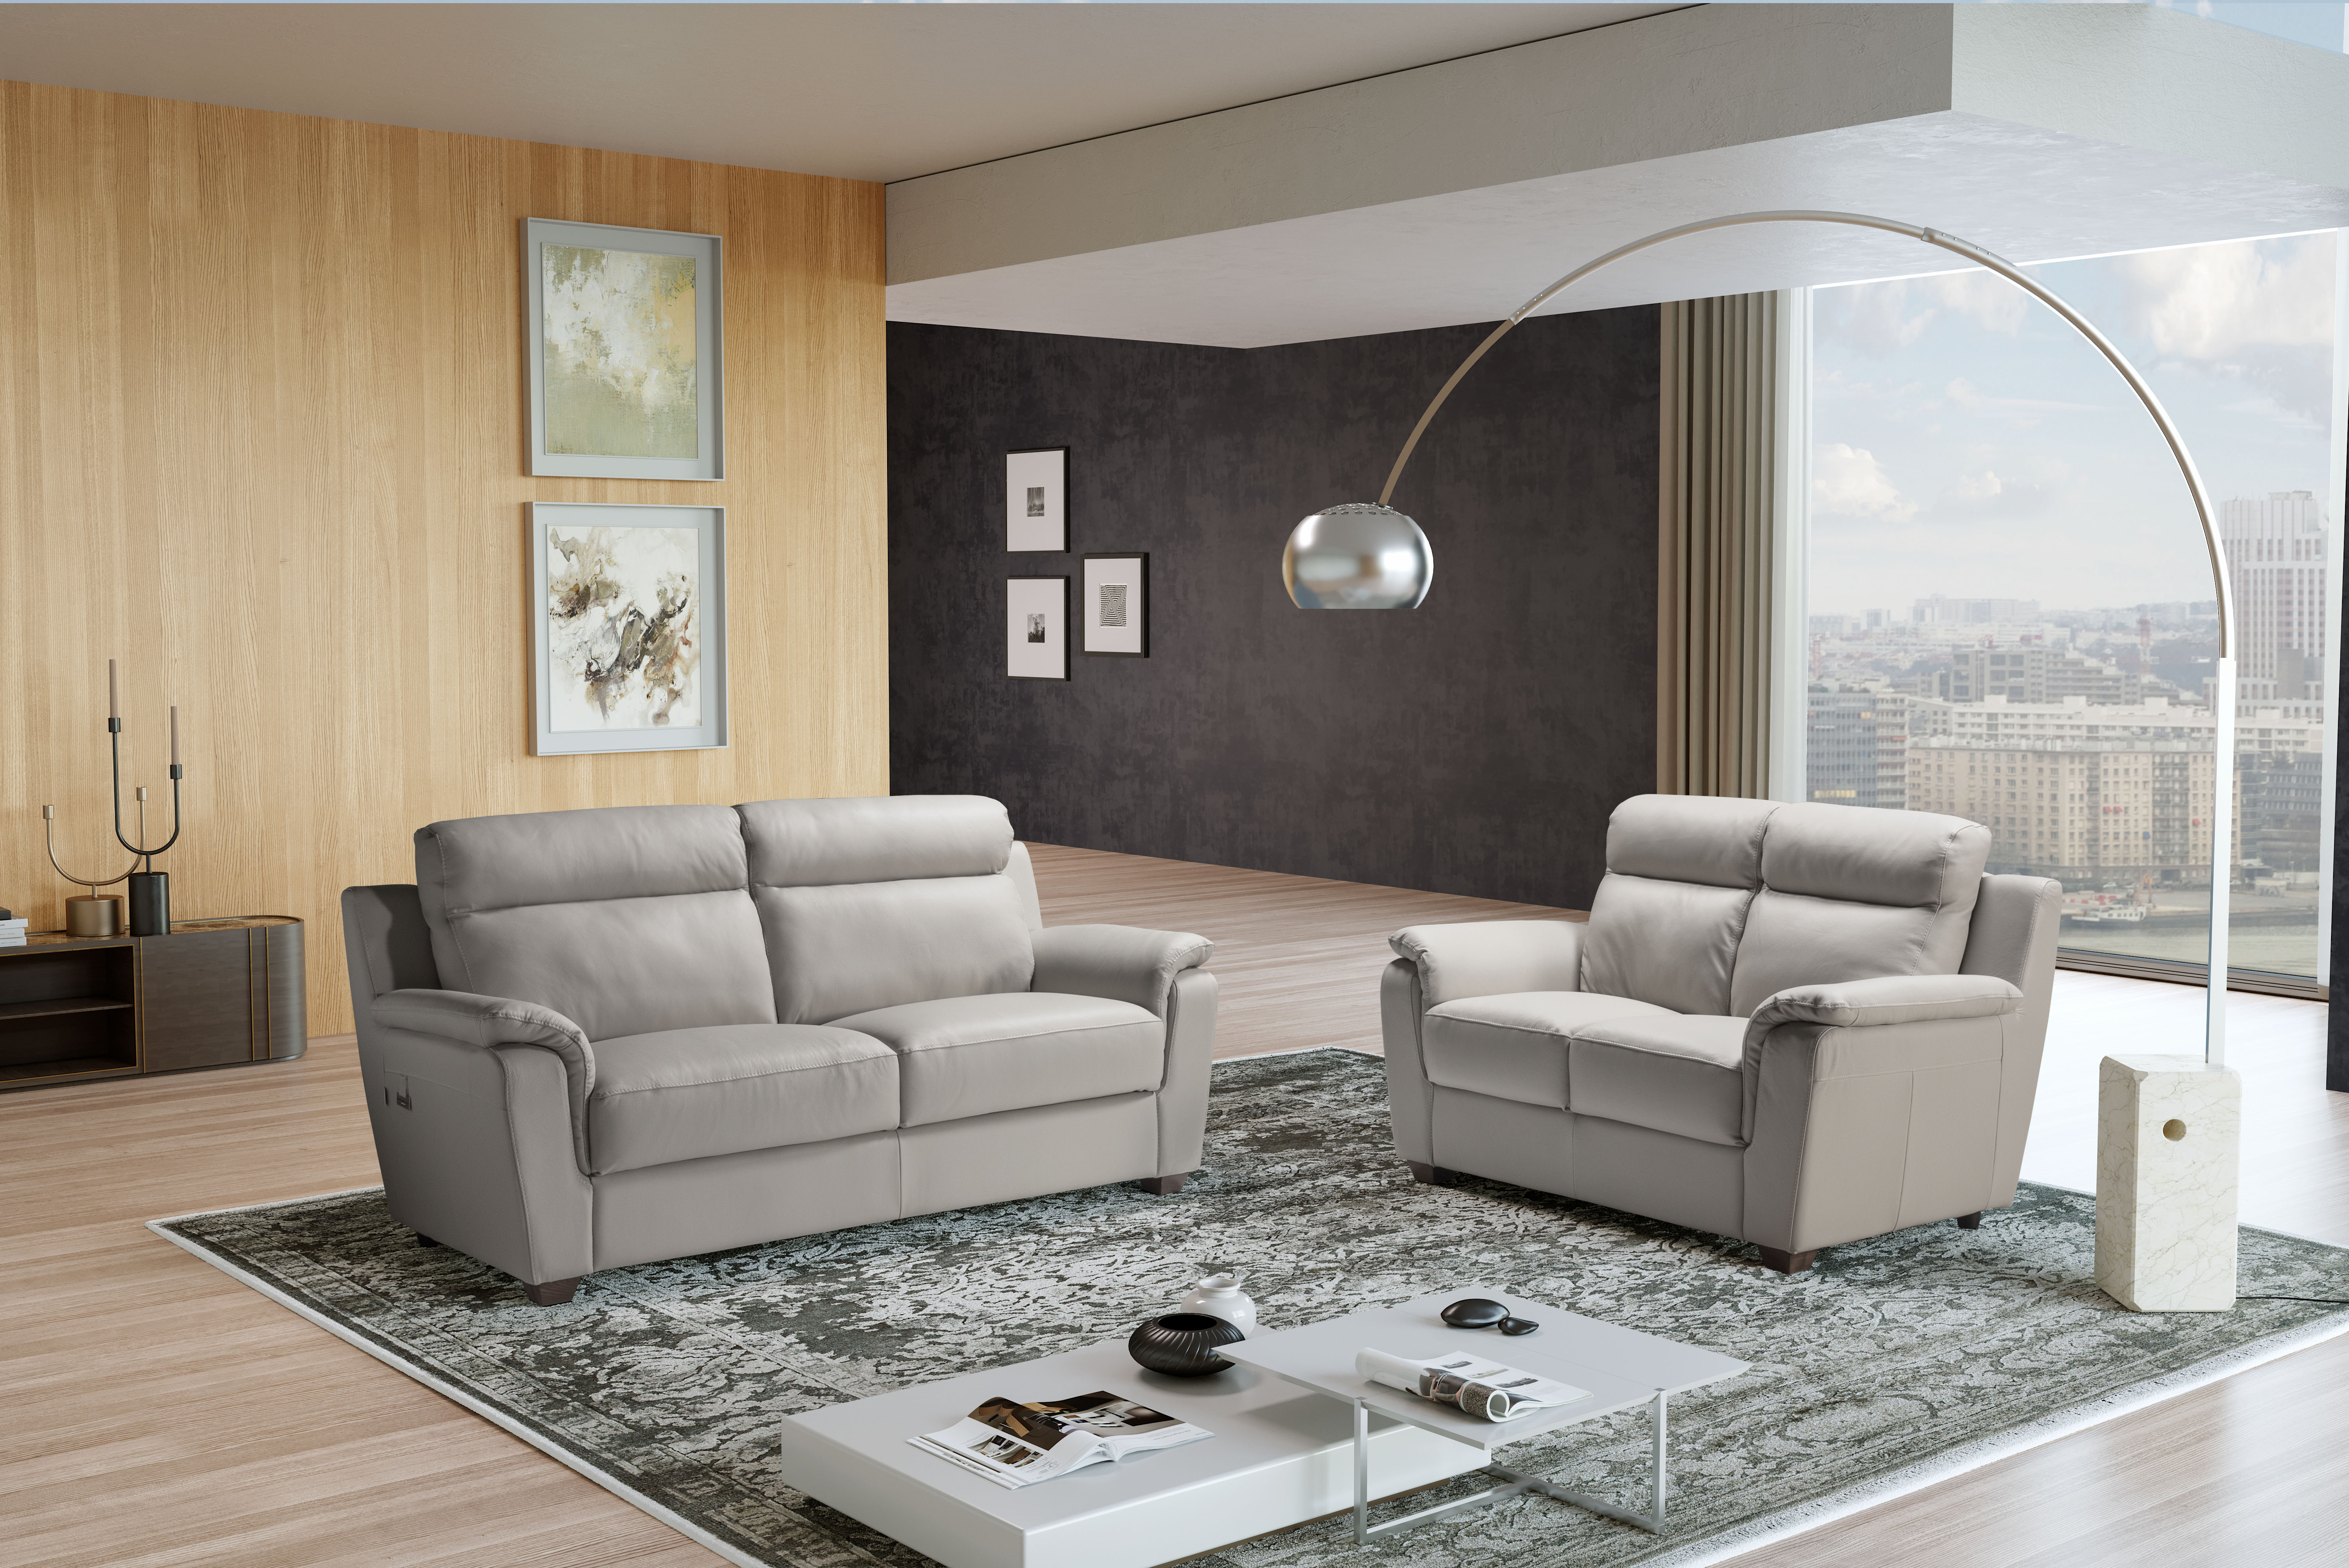 EDNA Italian Leather 3 & 2 Seat Sofas - Light Grey Cenere. RRP £3399